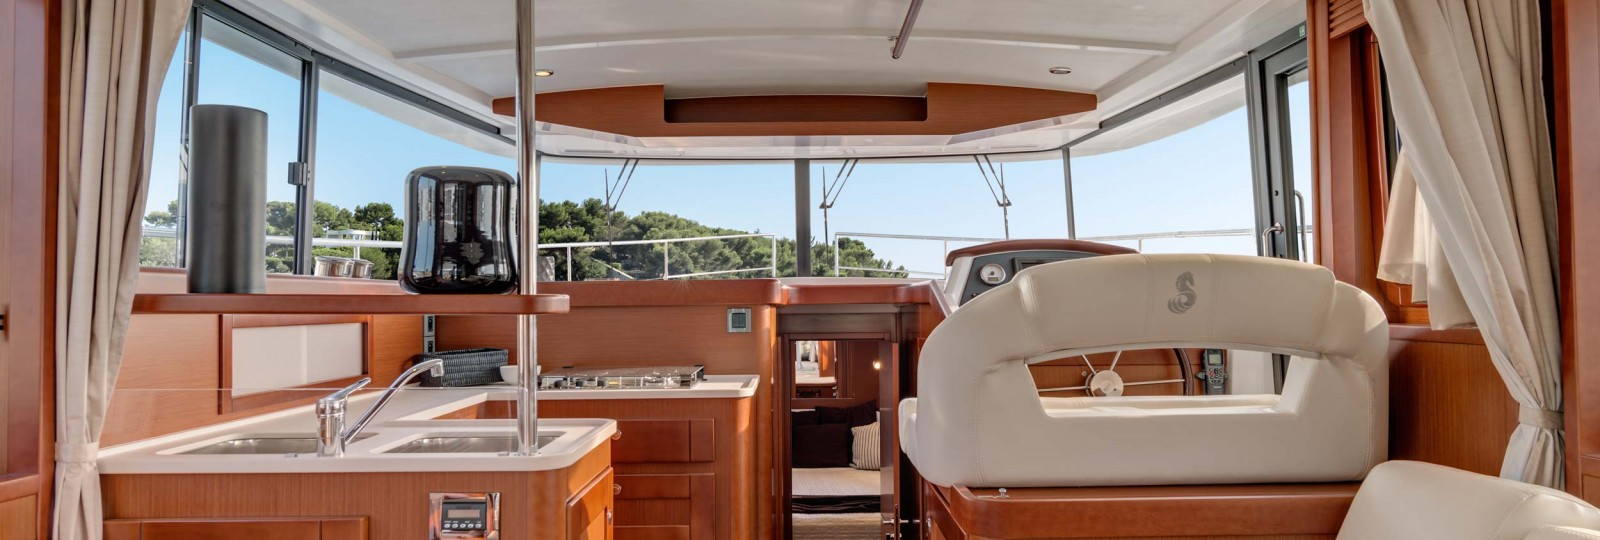 Beneteau Swift Trawler 44 saloon